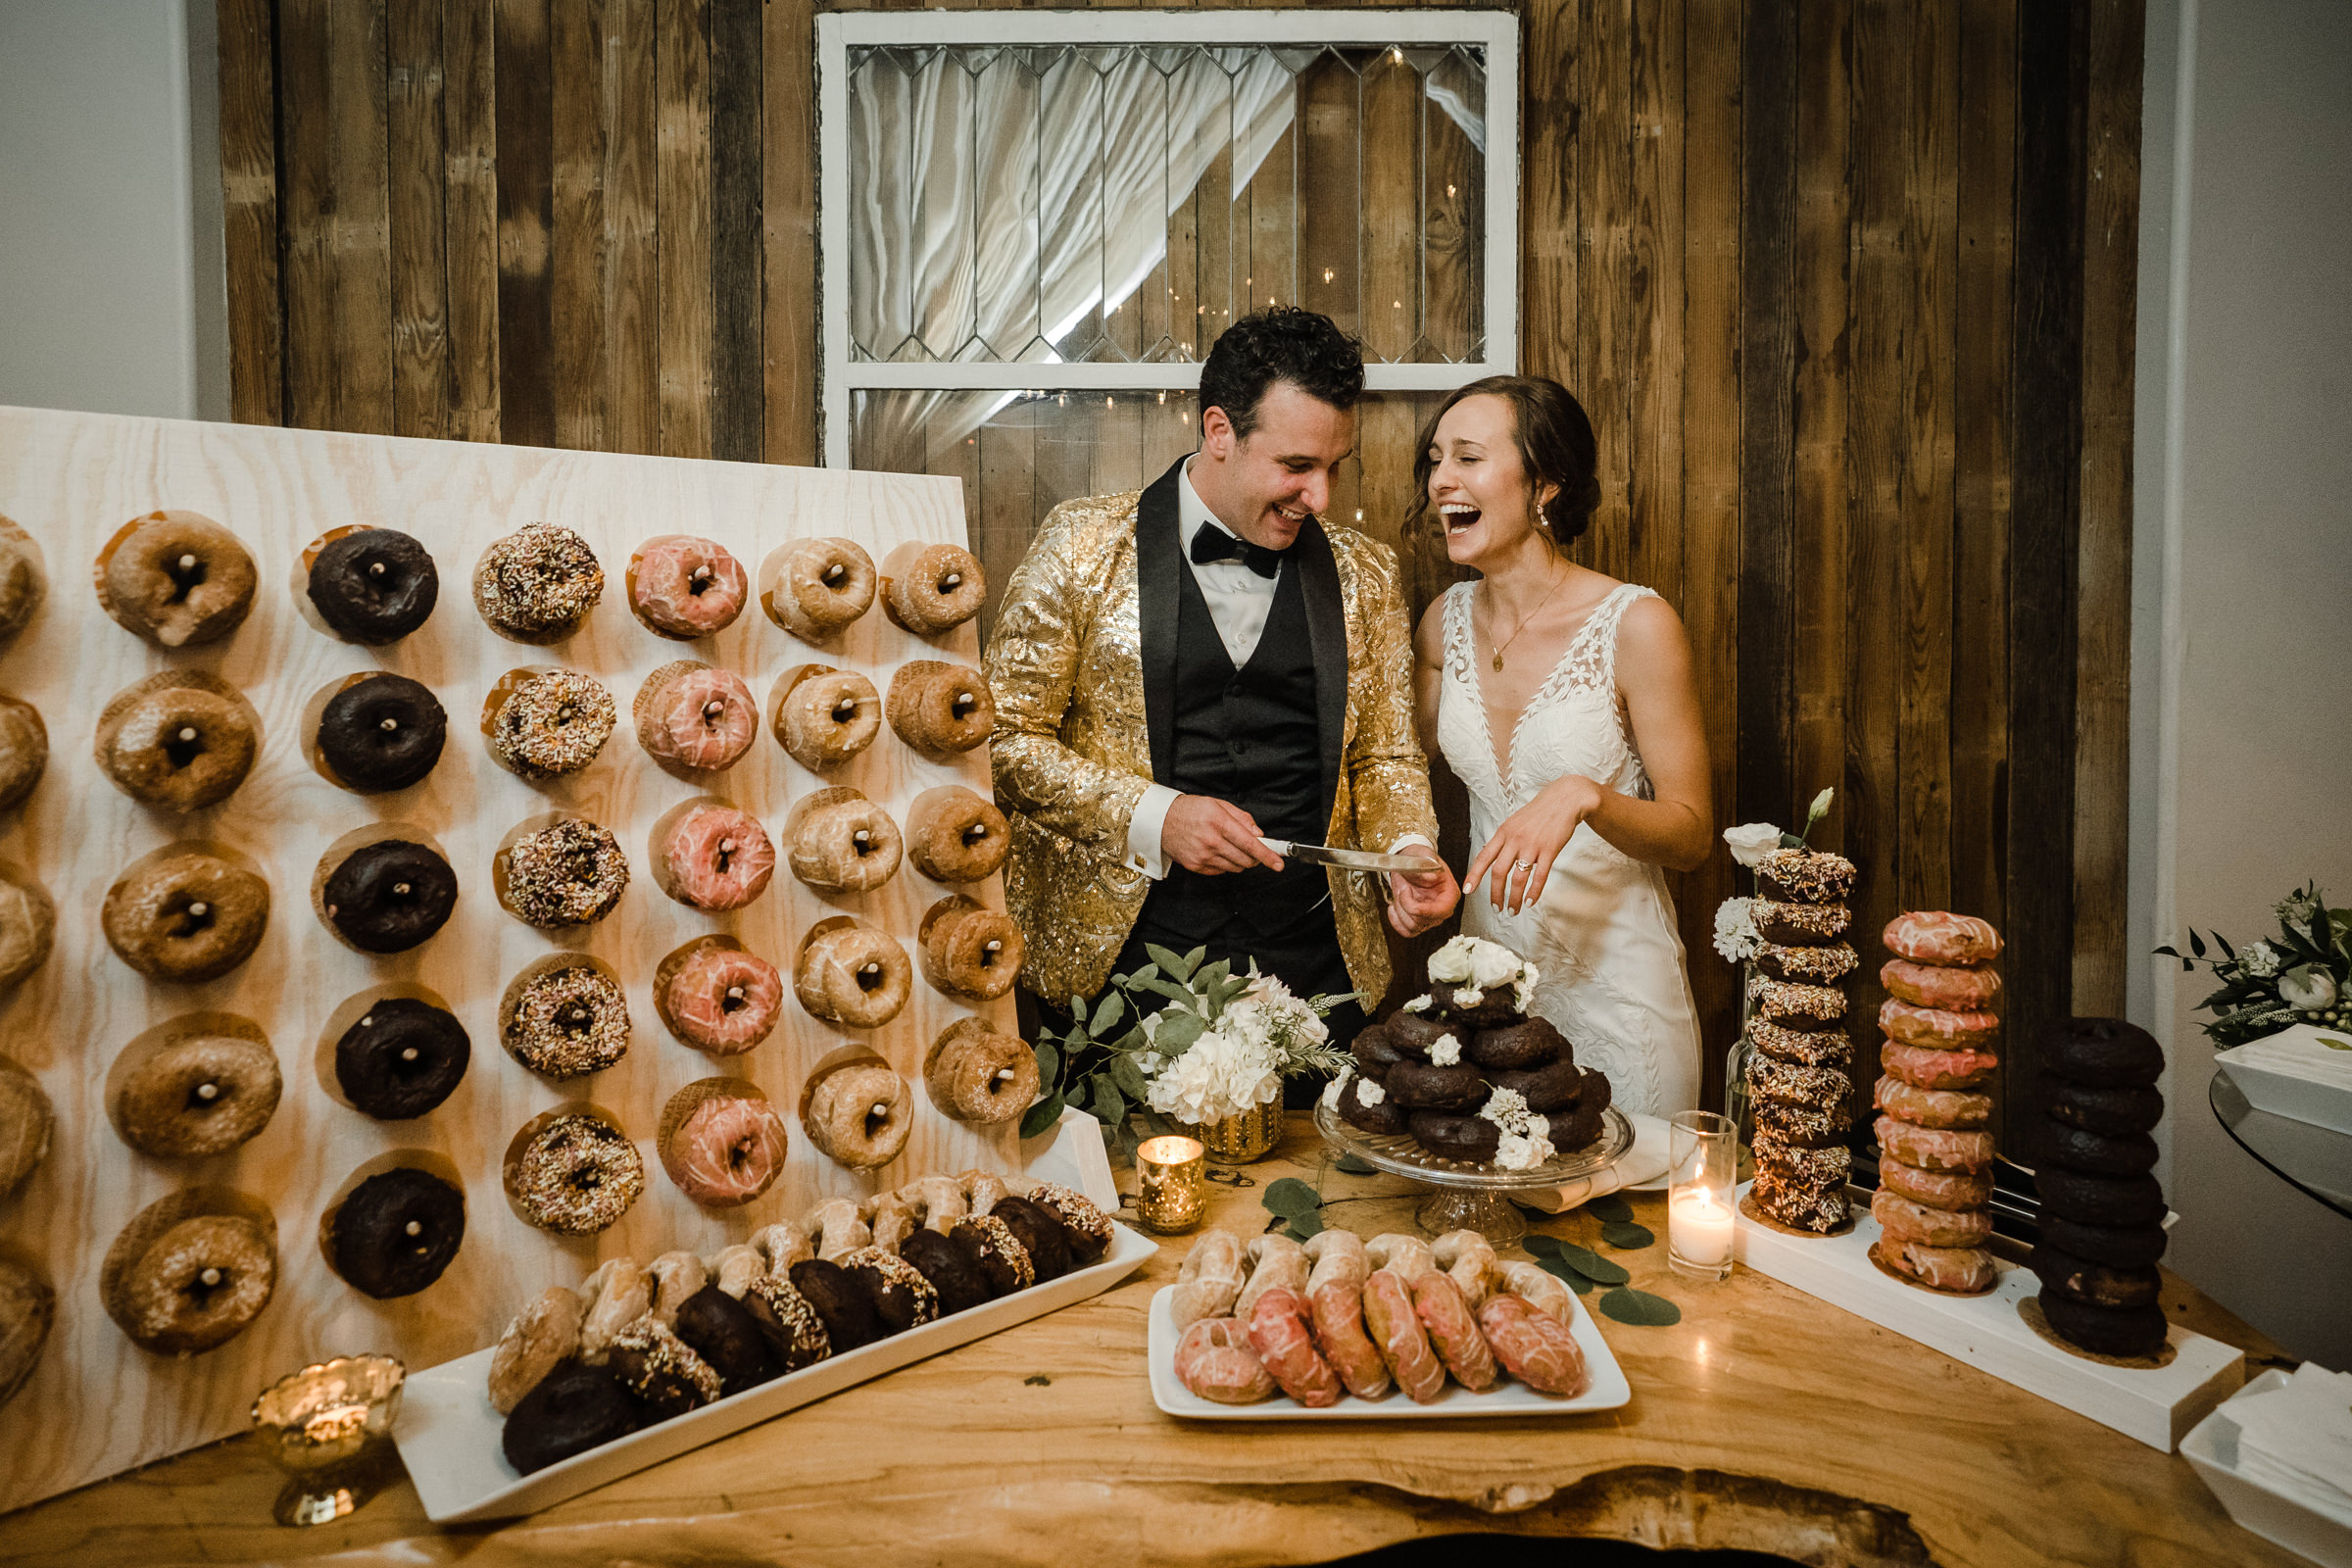 bride-and-groom-delighted-at-donut-dessert-table-sasha-reiko-photography